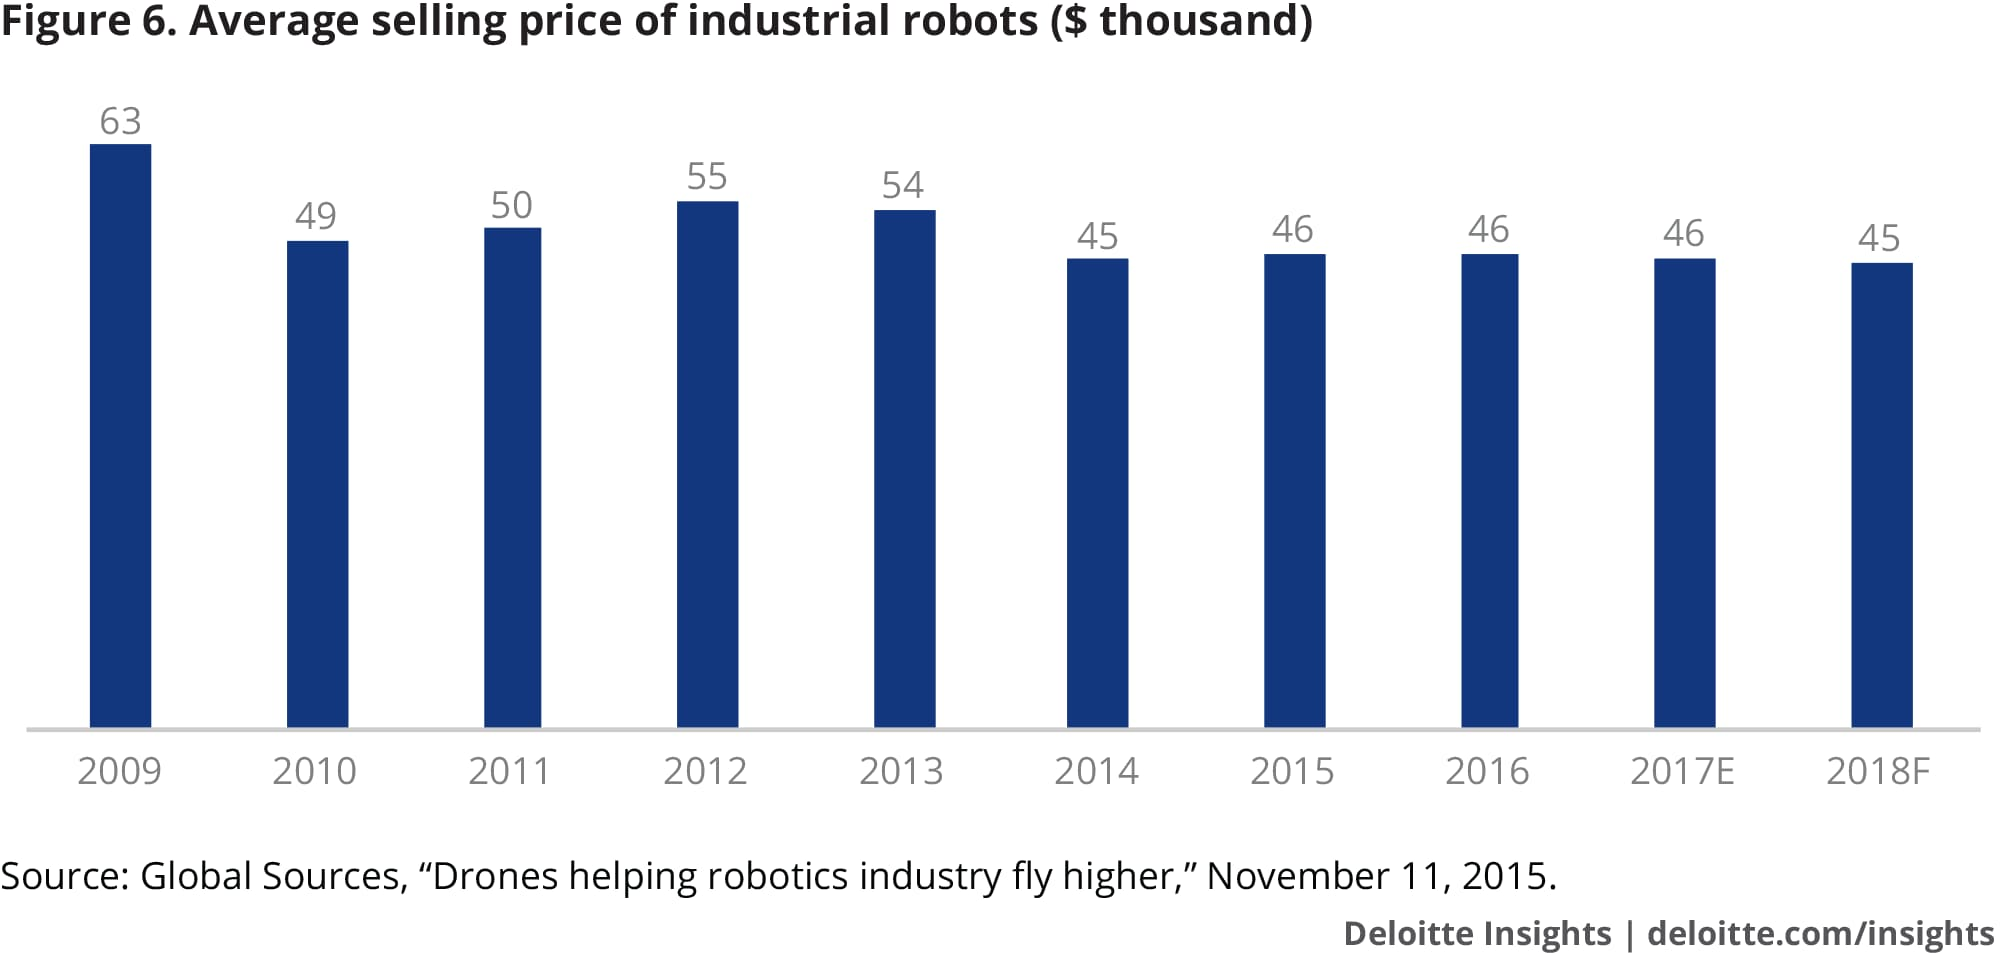 Average selling price of industrial robots ($ thousand)